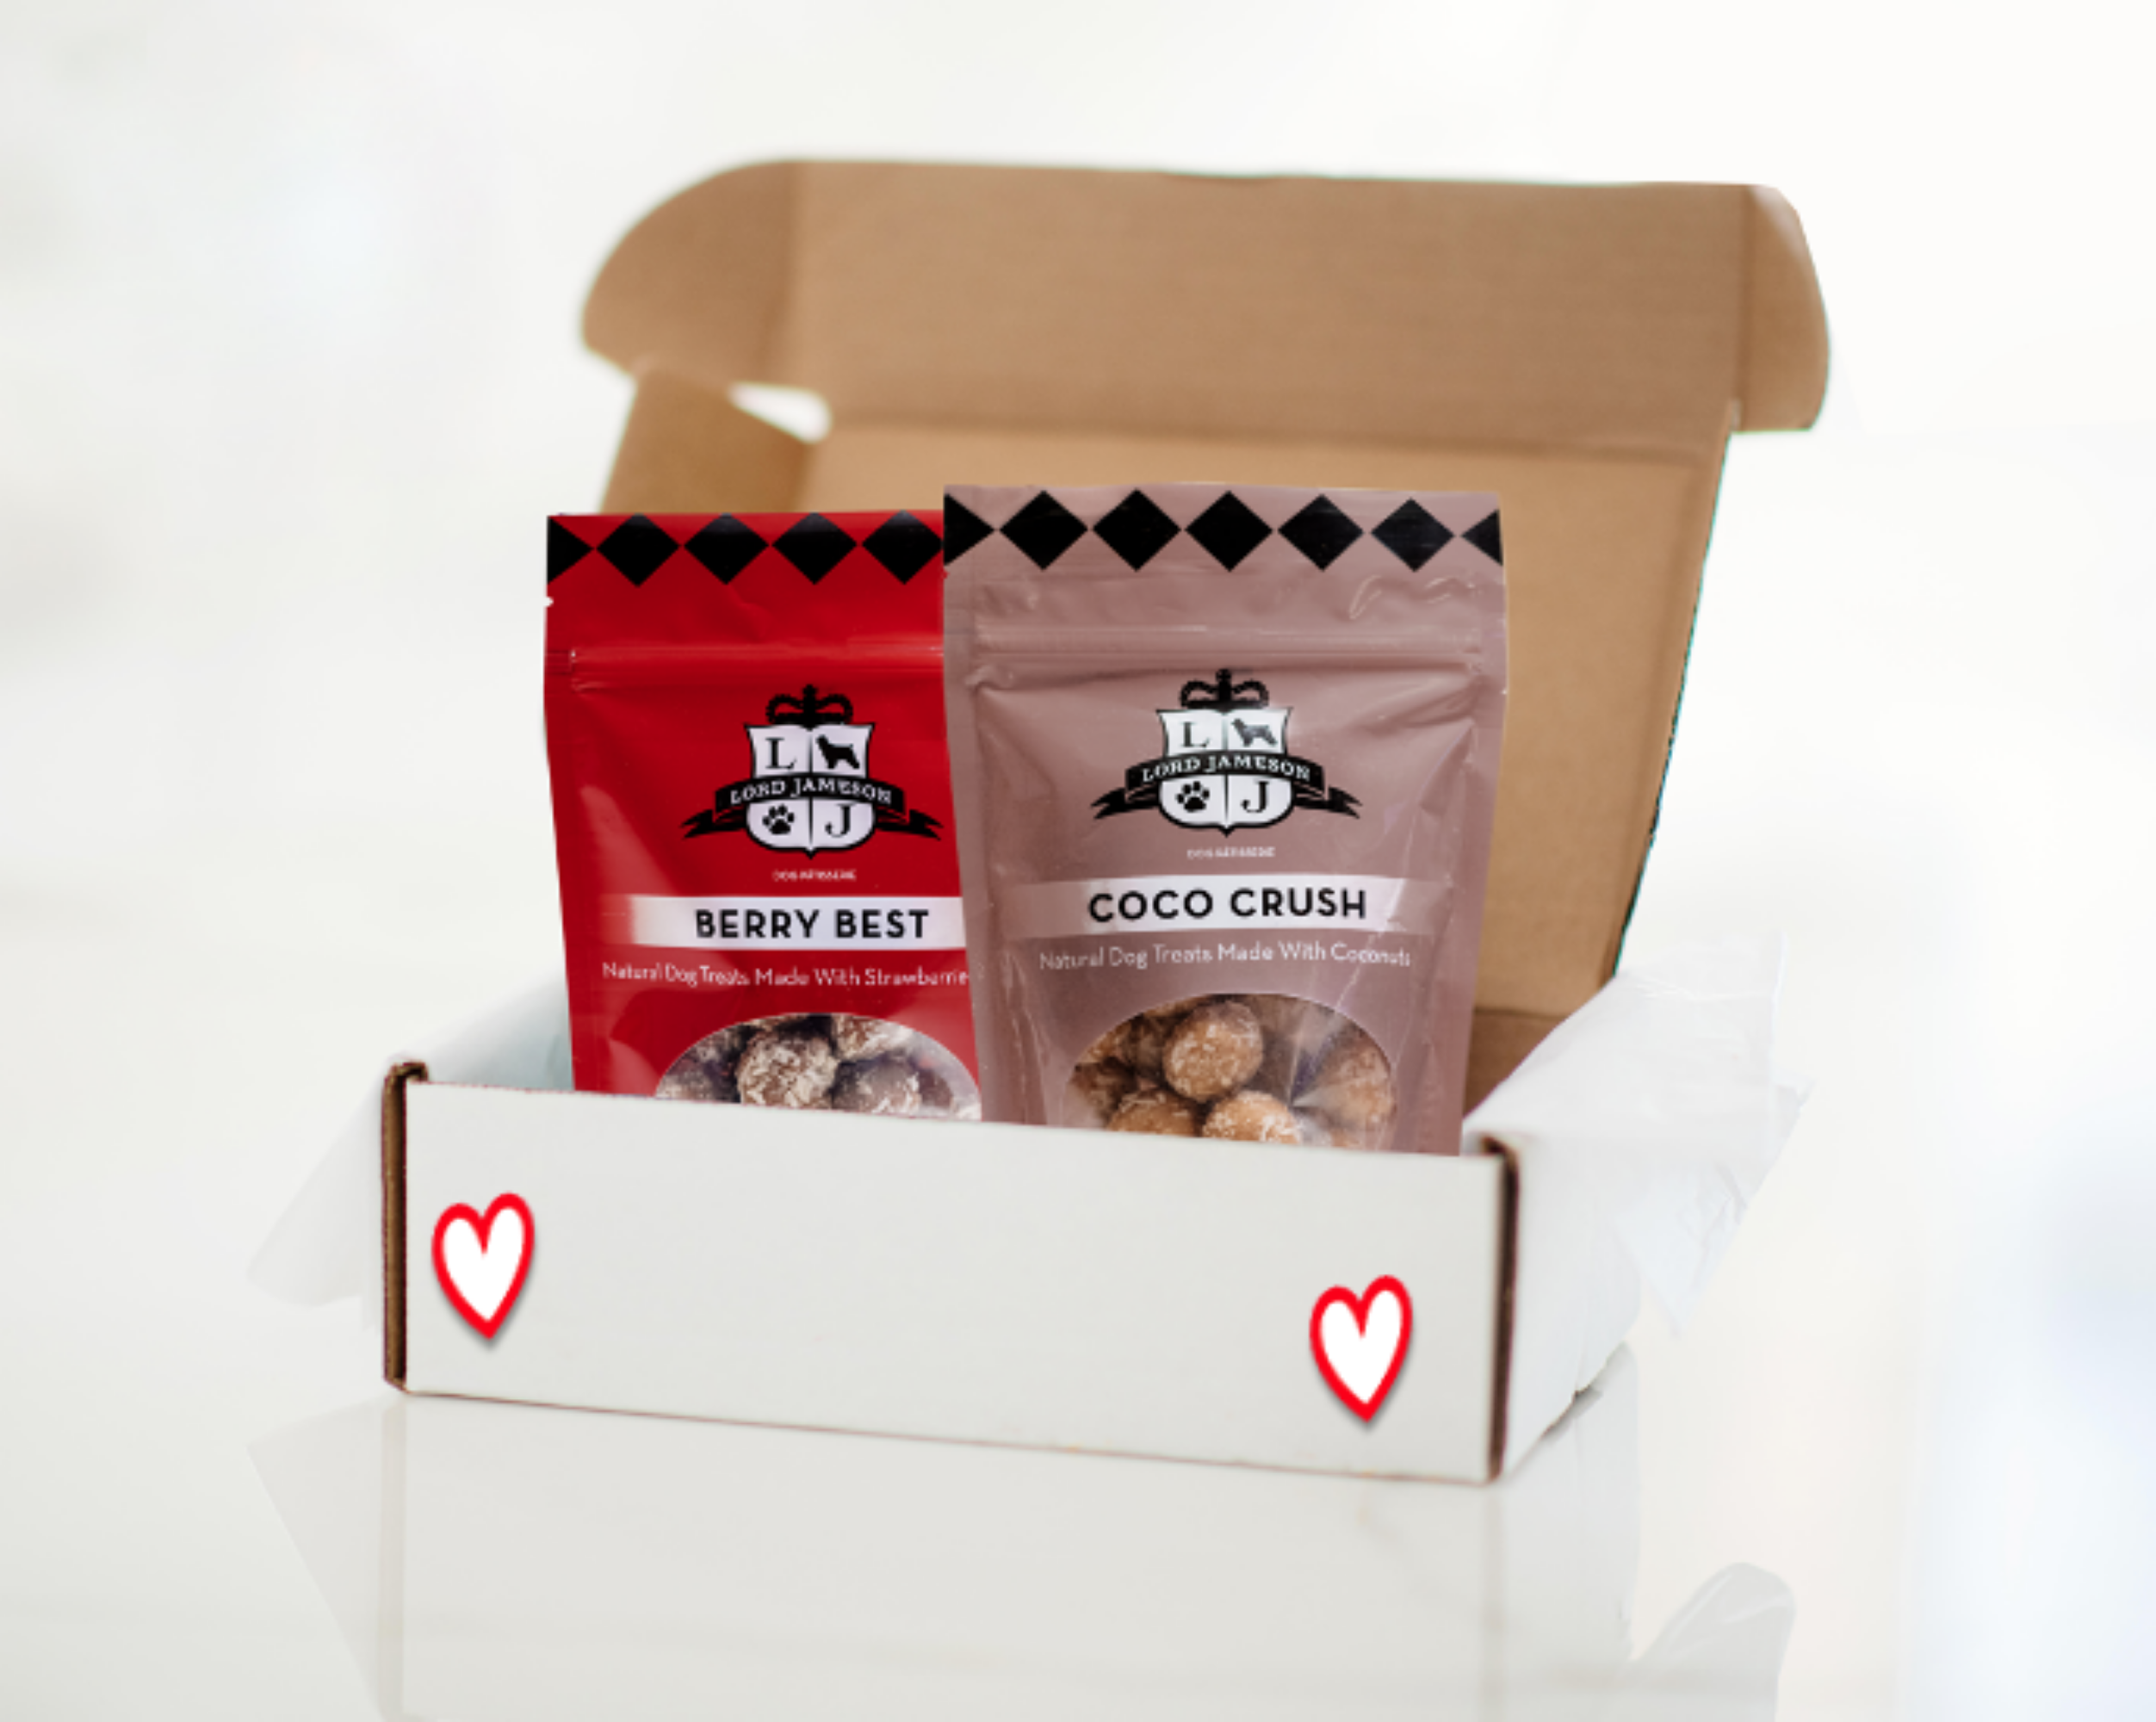 Valentine's Day Dog Treats | Berry Best & Coco Crush - 2 Pack - Lord Jameson Organic Dog Treats